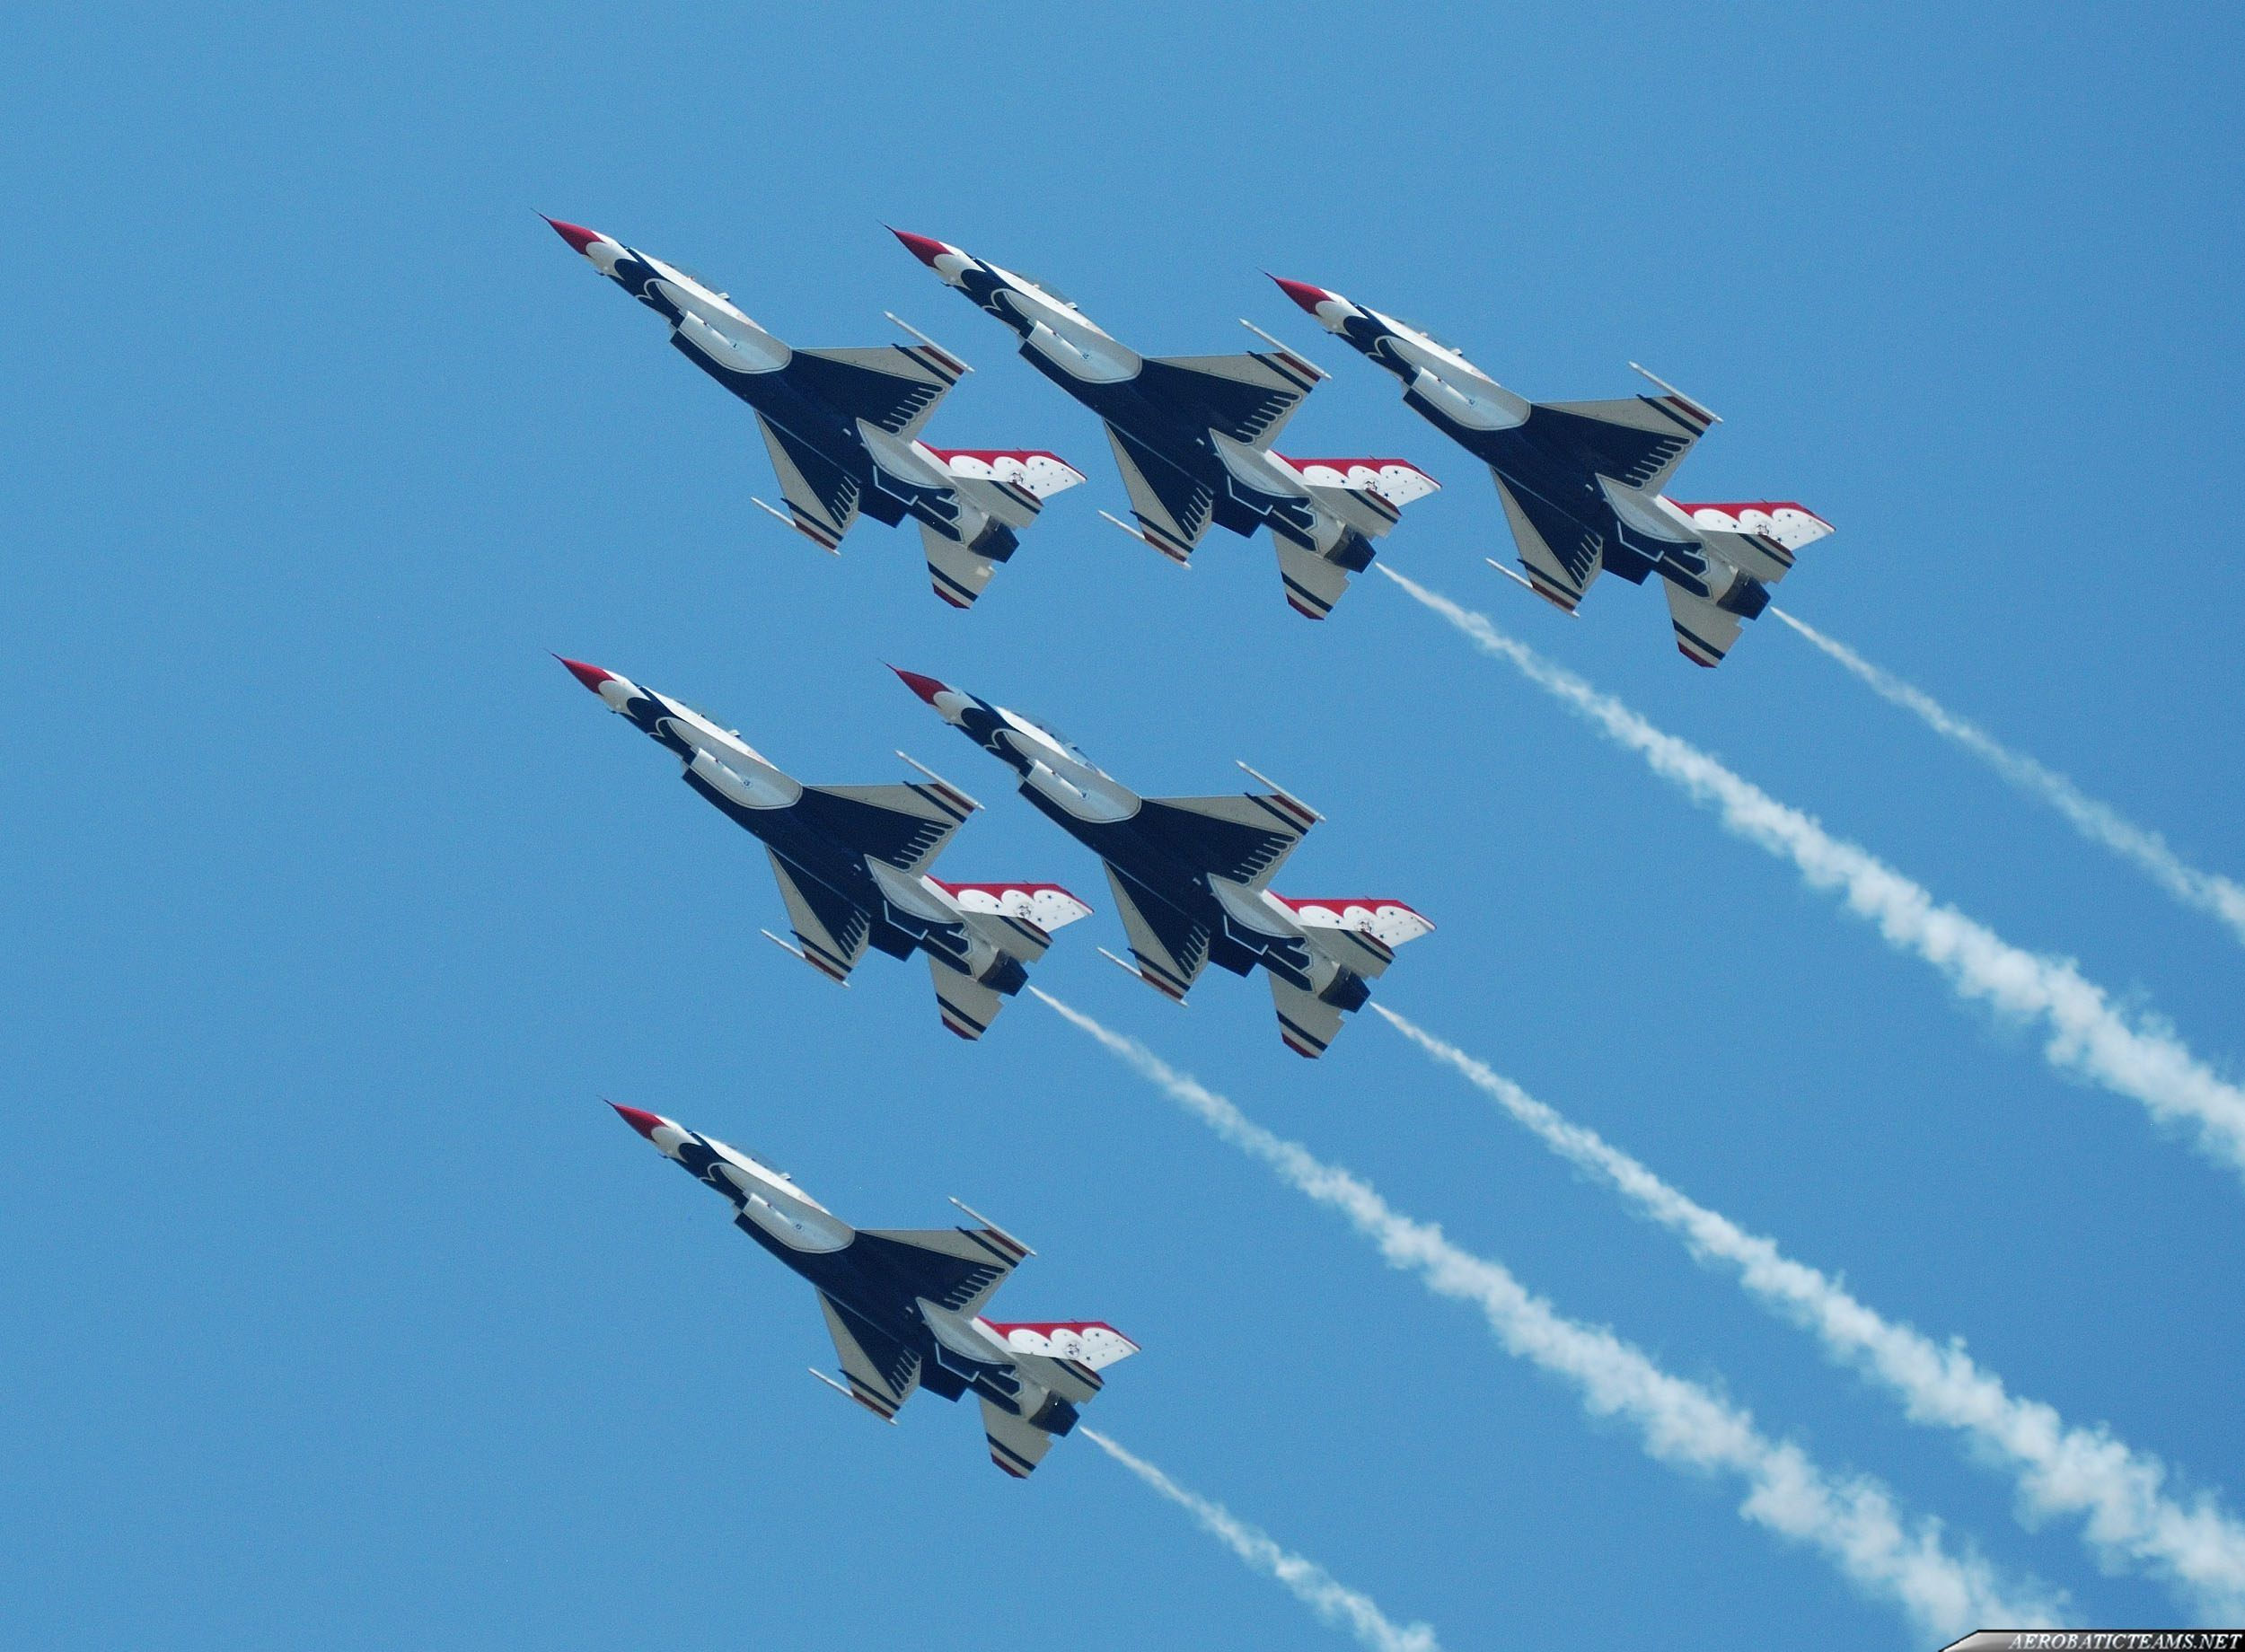 The US Air Force Thunderbirds will perform a flyover